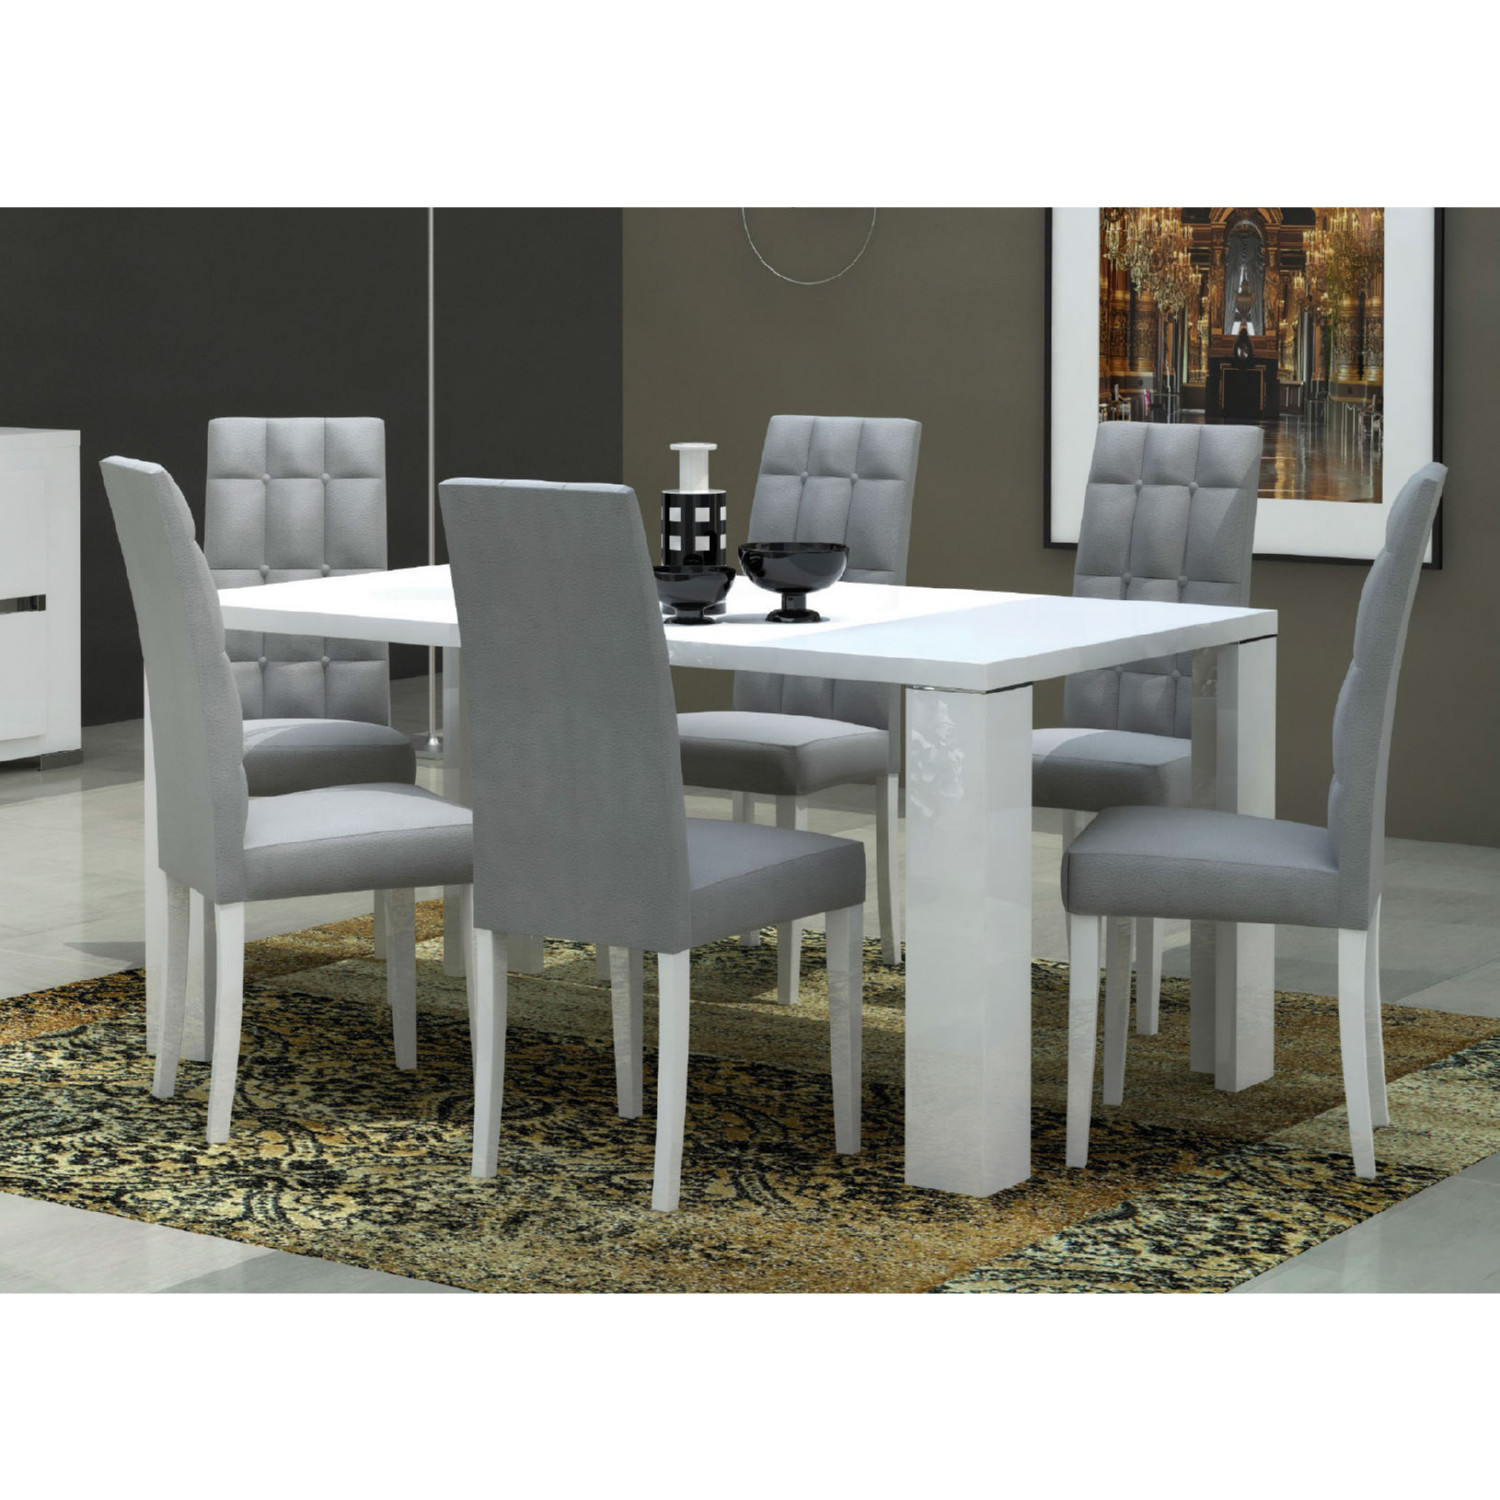 Elegance Dining Chair In Gloss White W Tufted Grey Microfiber Set Of 2 By Esf Furniture Imports